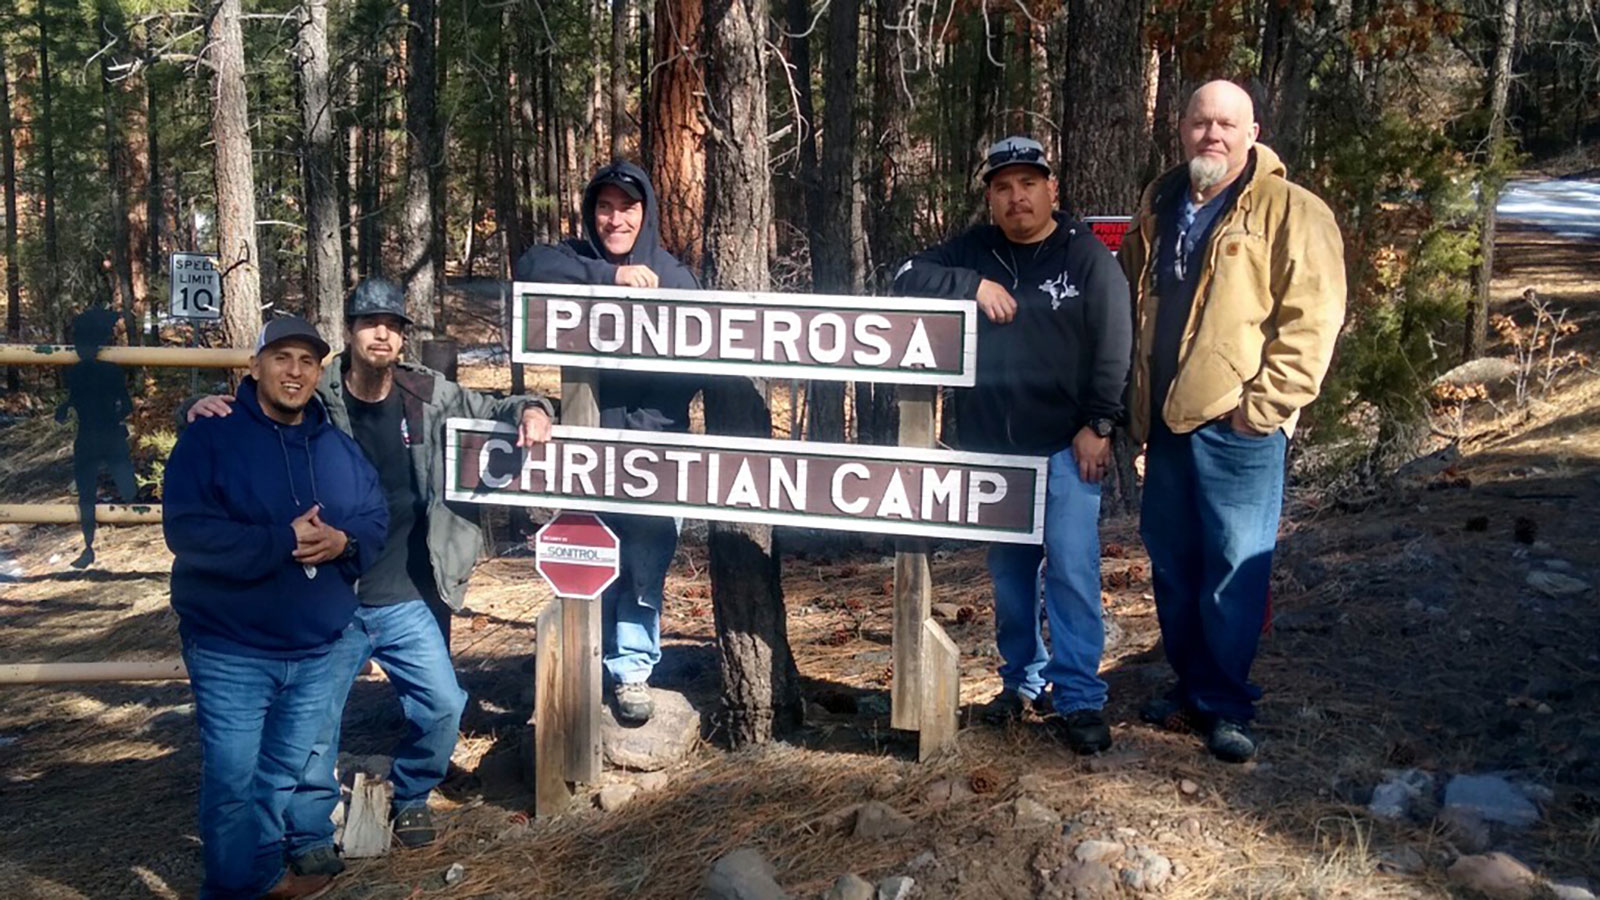 Two former inmates helped fight forest fires while in prison. Now they've started their own forestry business